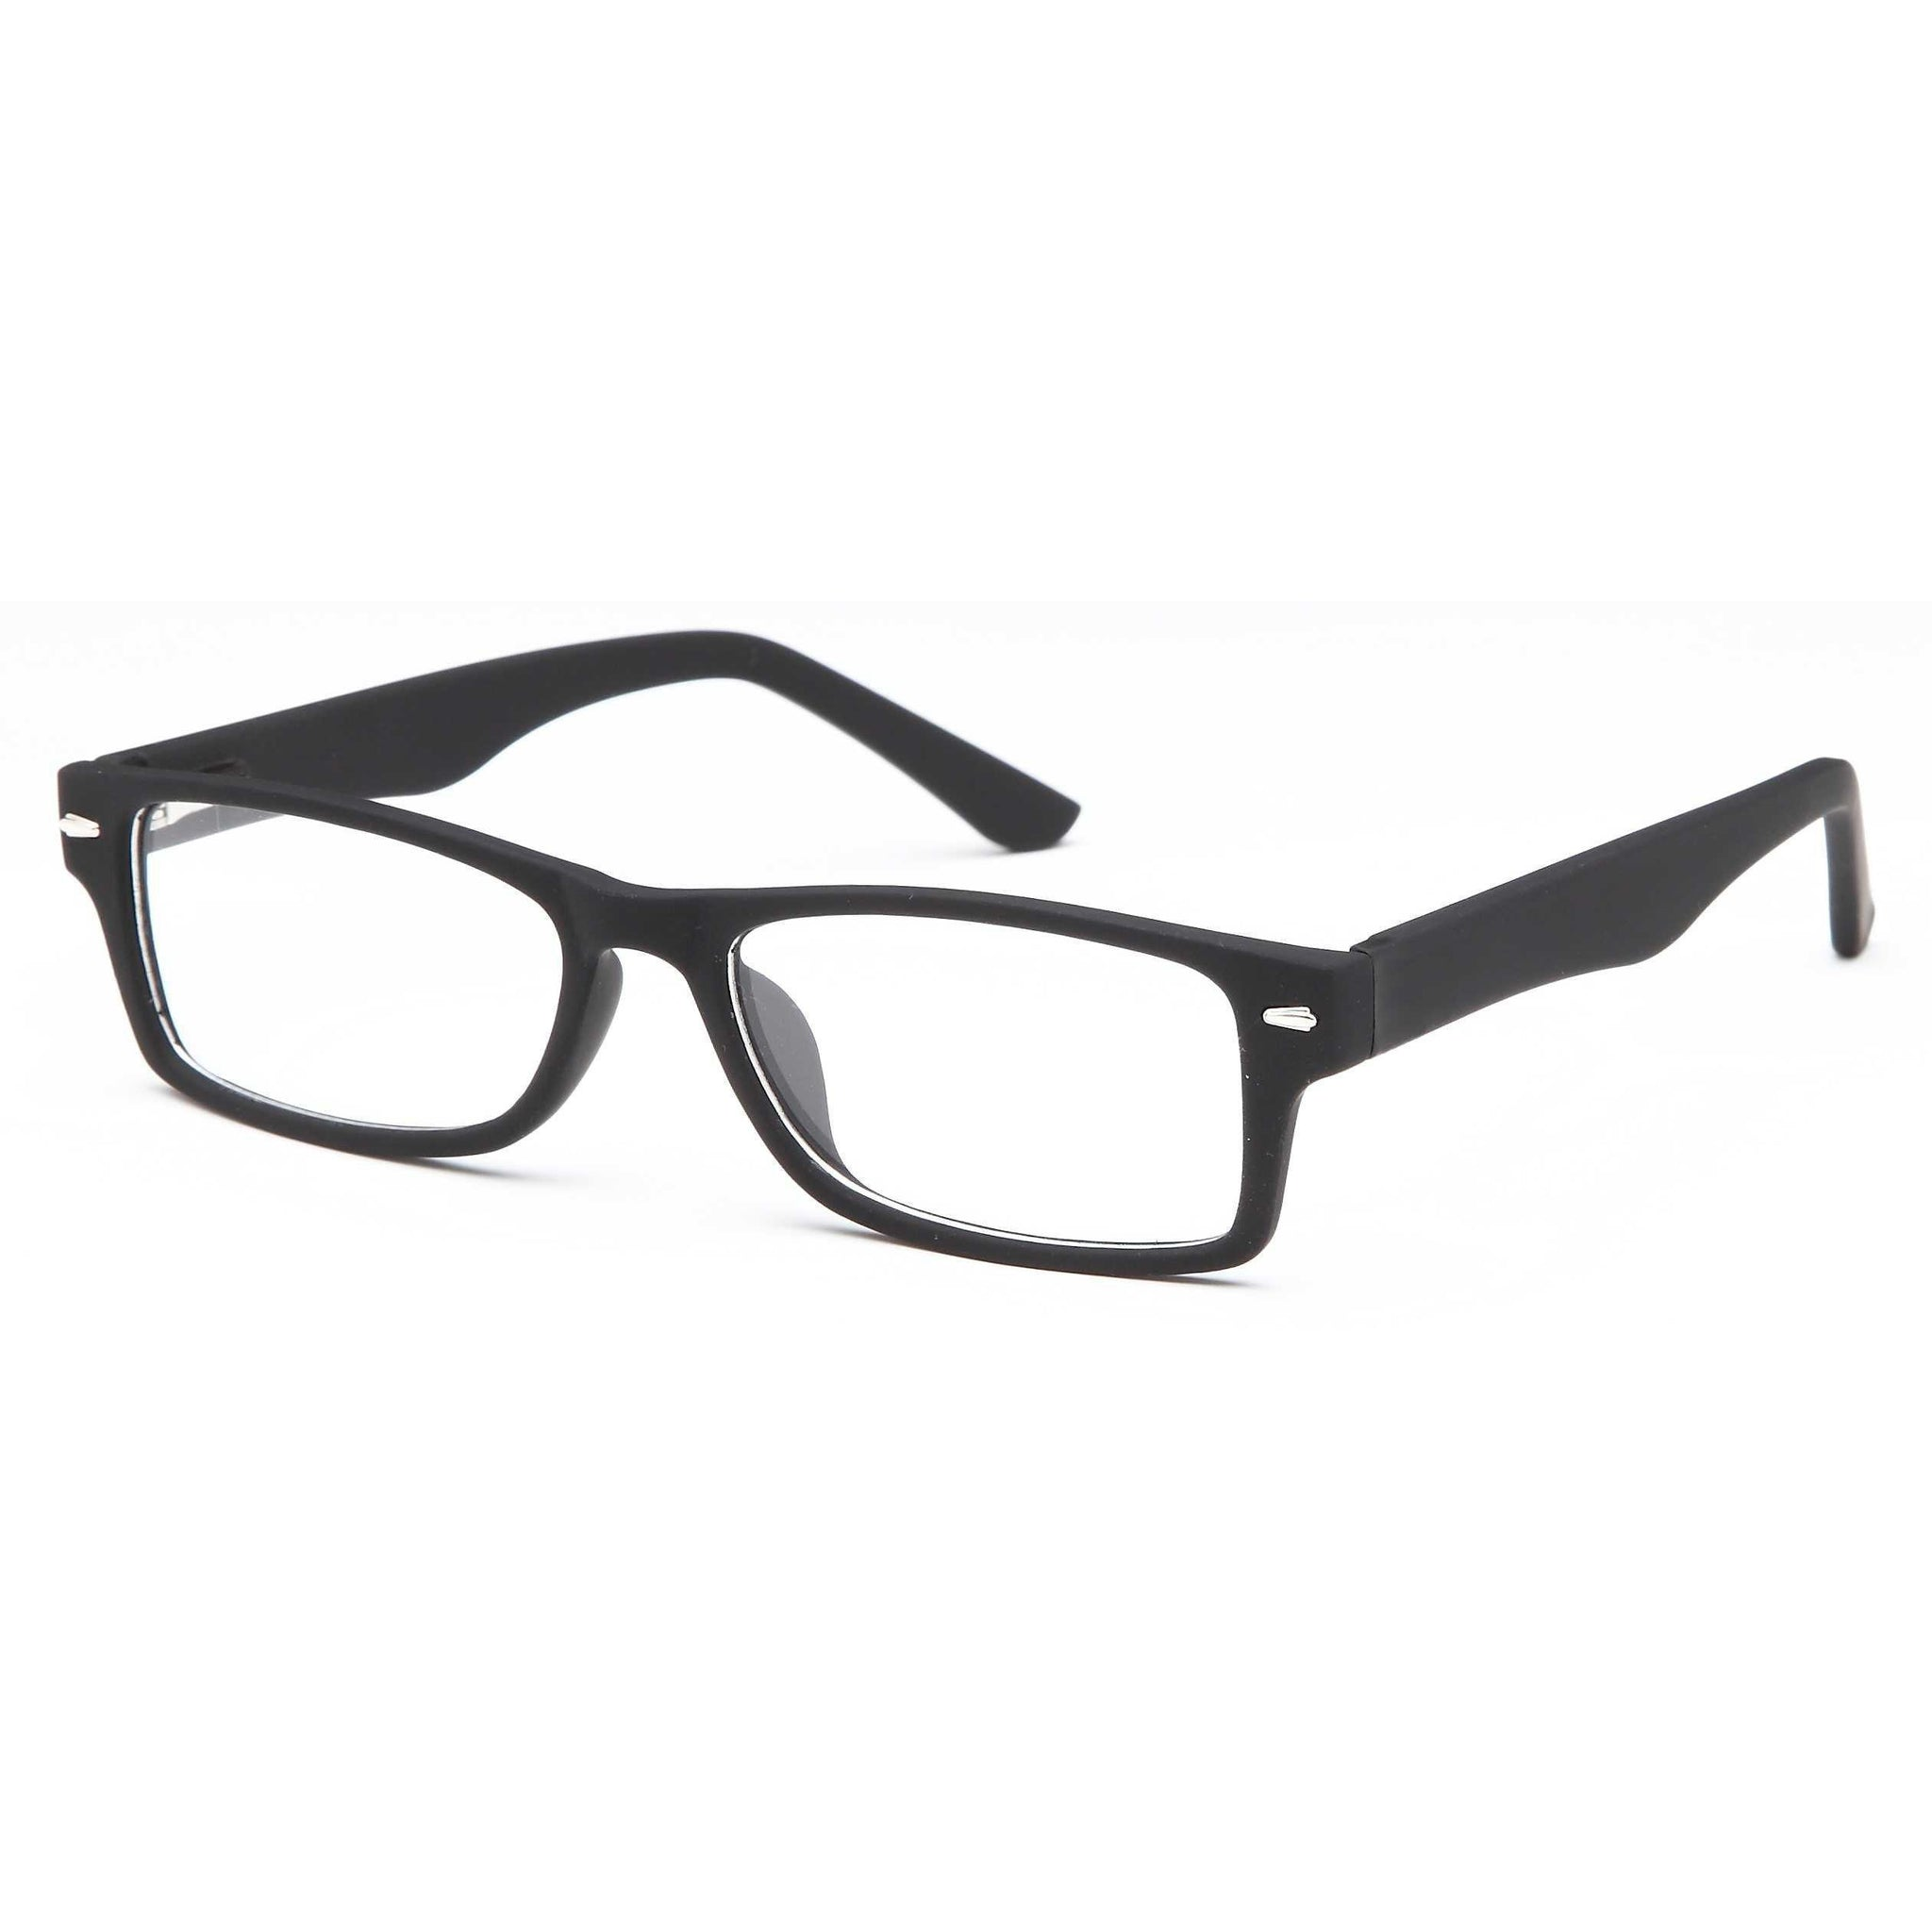 GEN Y Prescription Glasses GENIUS Eyeglasses Frame